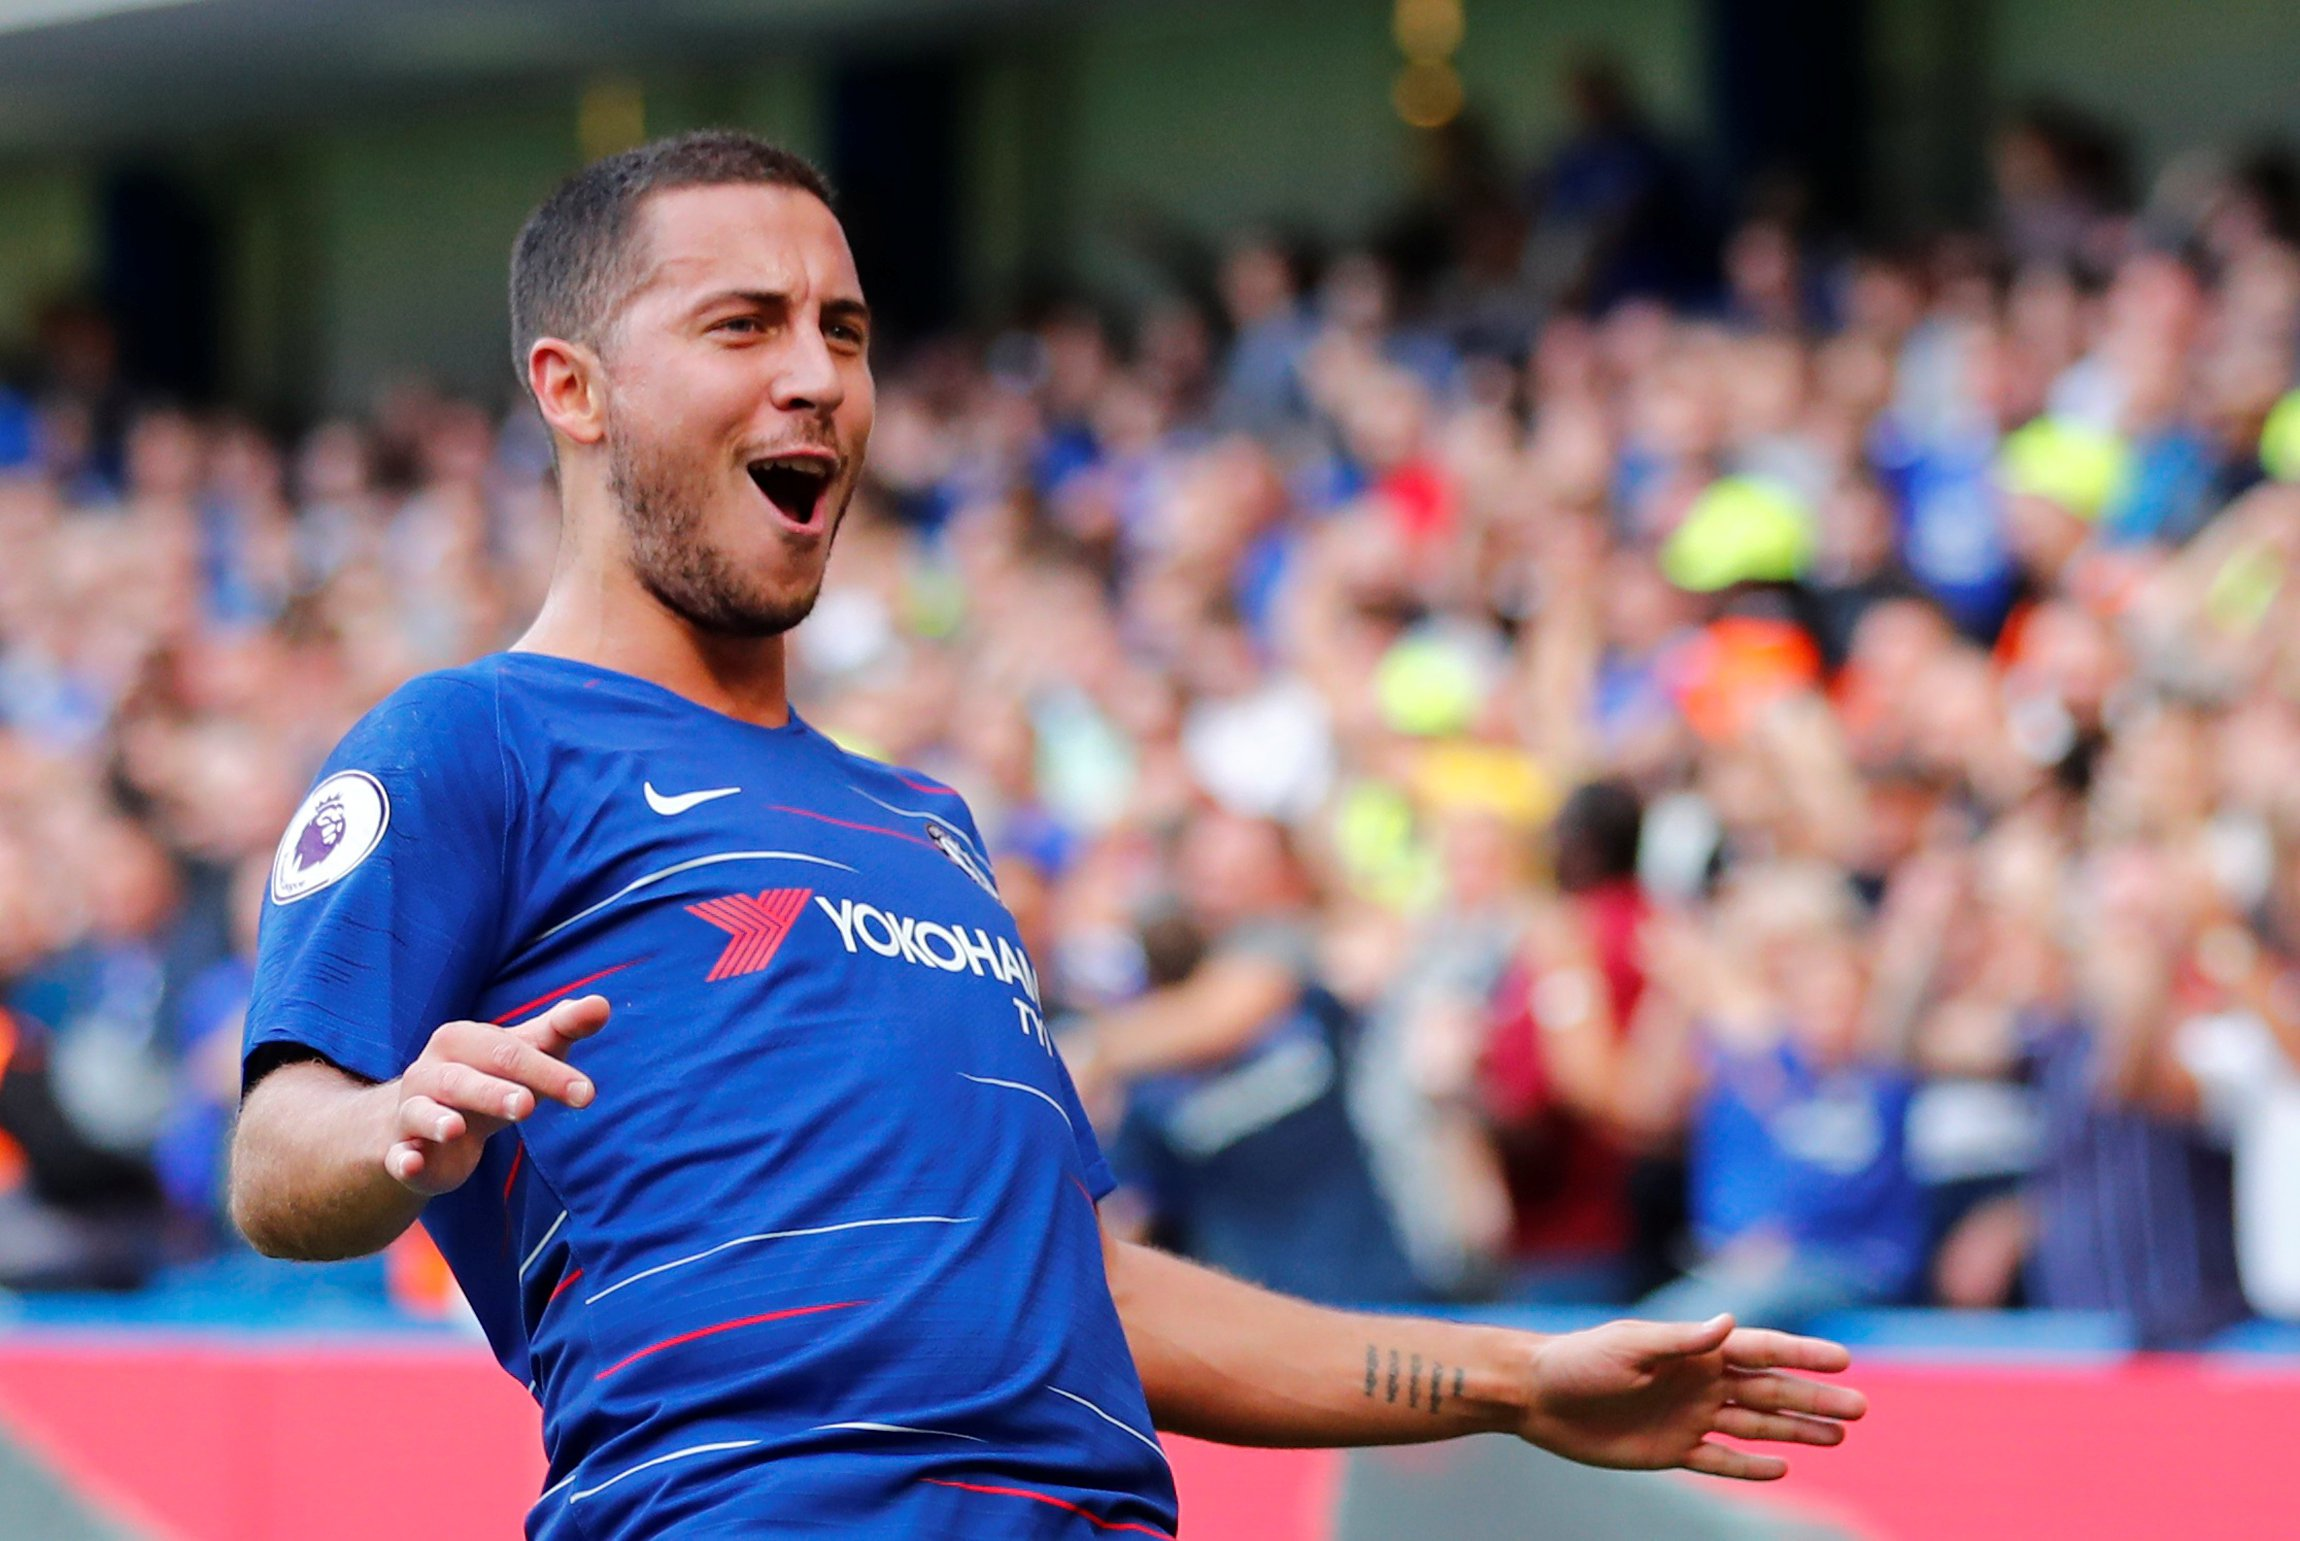 "Soccer Football - Premier League - Chelsea v Cardiff City - Stamford Bridge, London, Britain - September 15, 2018 Chelsea's Eden Hazard celebrates scoring their first goal REUTERS/Eddie Keogh EDITORIAL USE ONLY. No use with unauthorized audio, video, data, fixture lists, club/league logos or ""live"" services. Online in-match use limited to 75 images, no video emulation. No use in betting, games or single club/league/player publications. Please contact your account representative for further details."